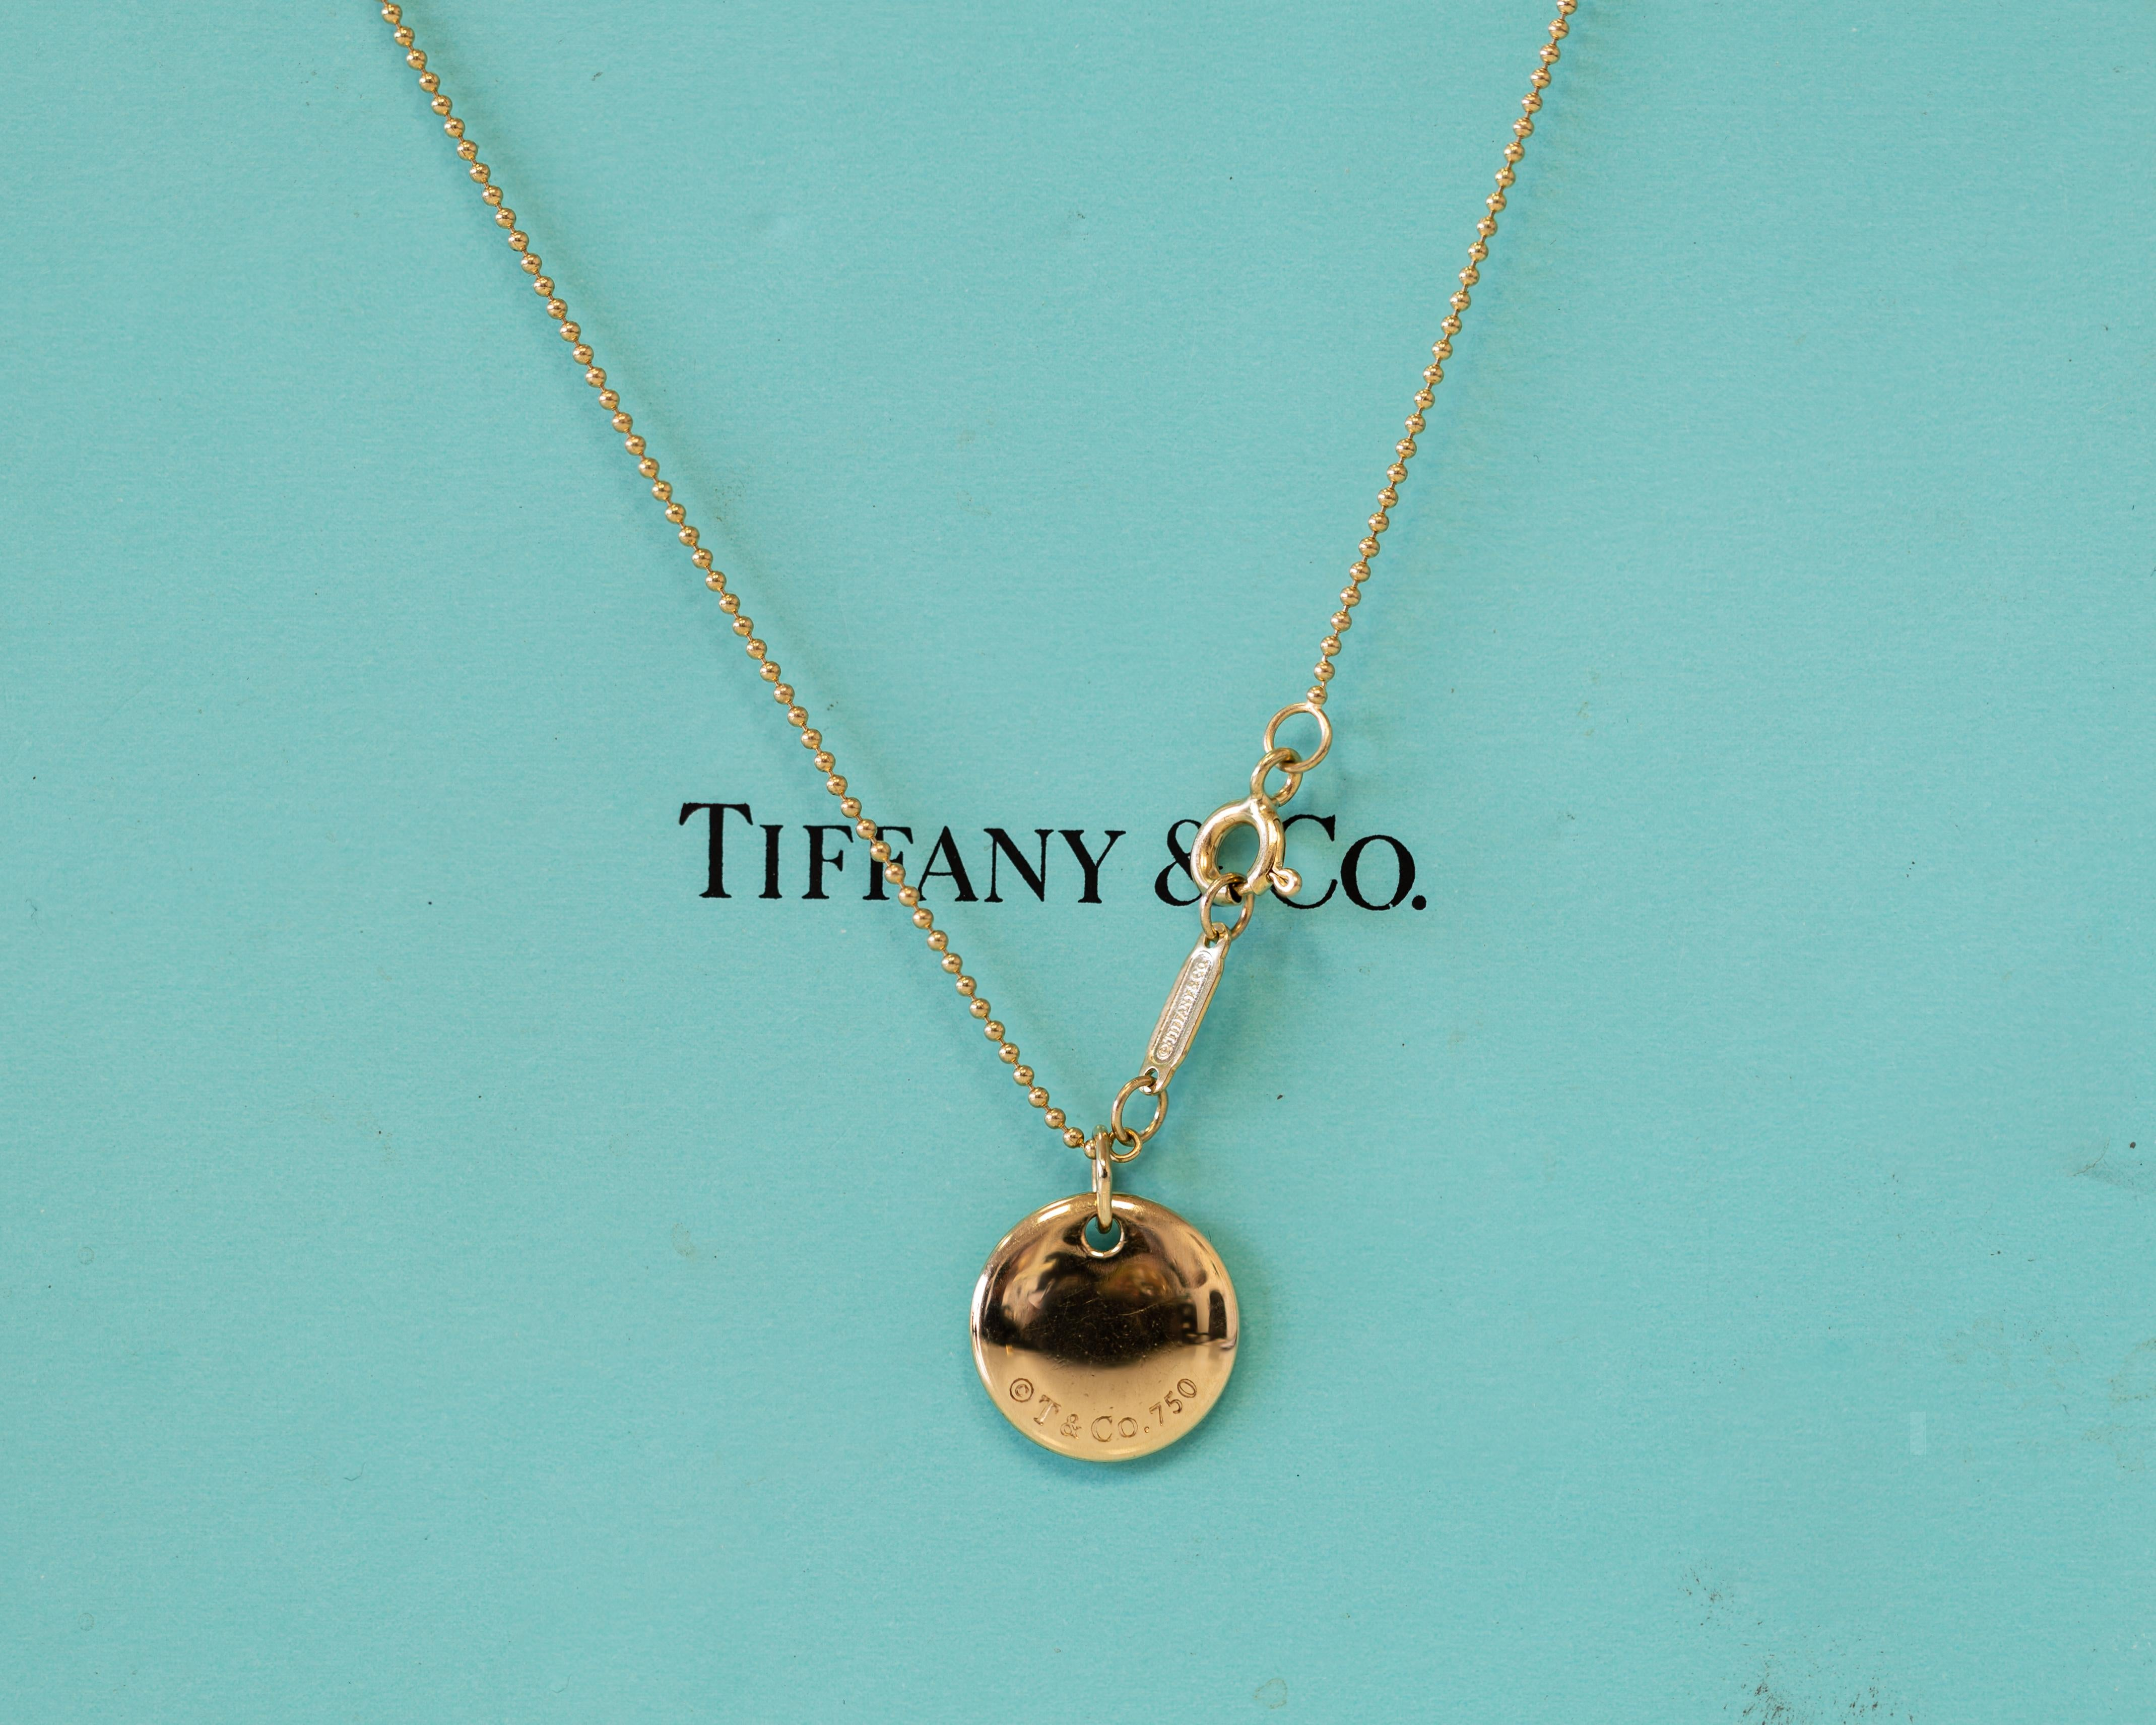 e353365b1 18 Karat Yellow Gold Tiffany and Co. Necklace with Round Letter